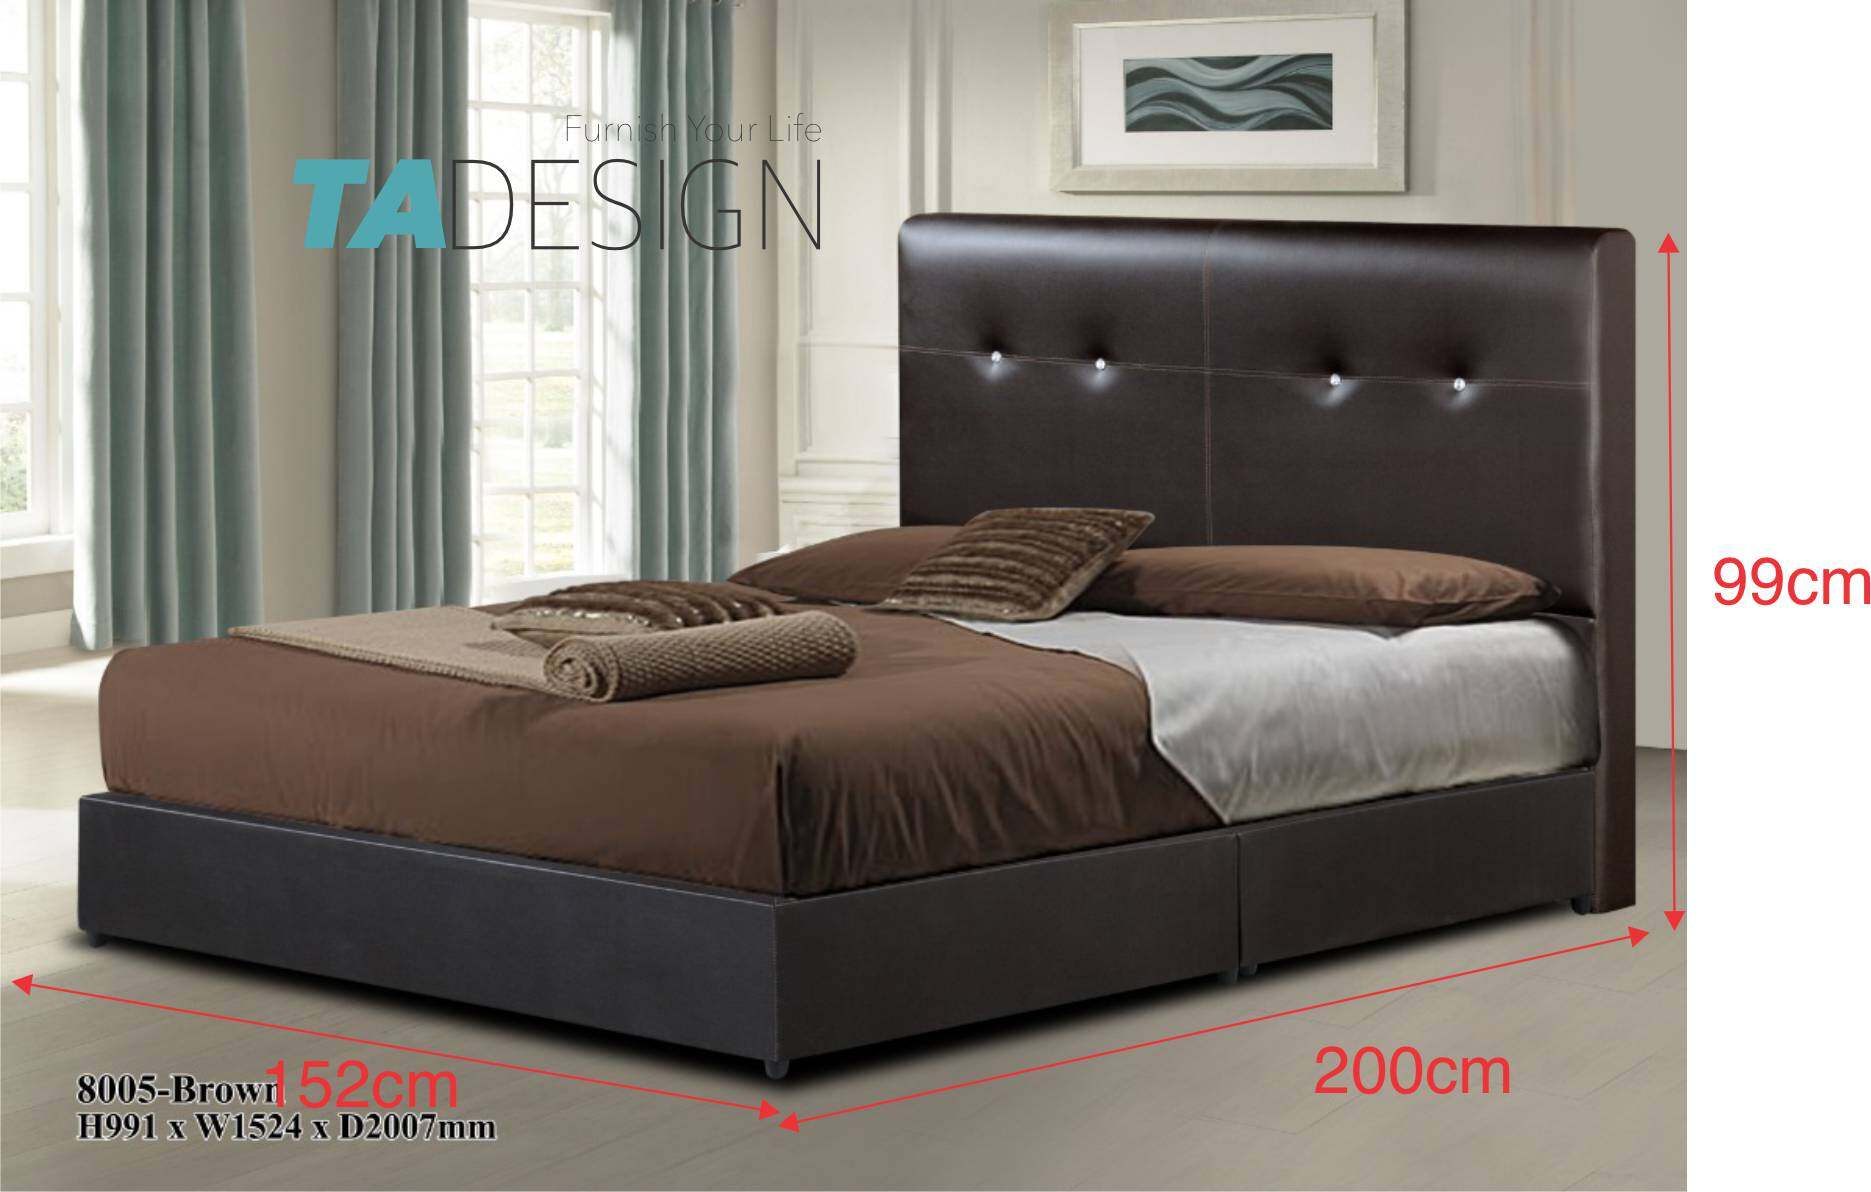 DIVAN waterproof PVC divan king bed frame-dark brown 8005 King